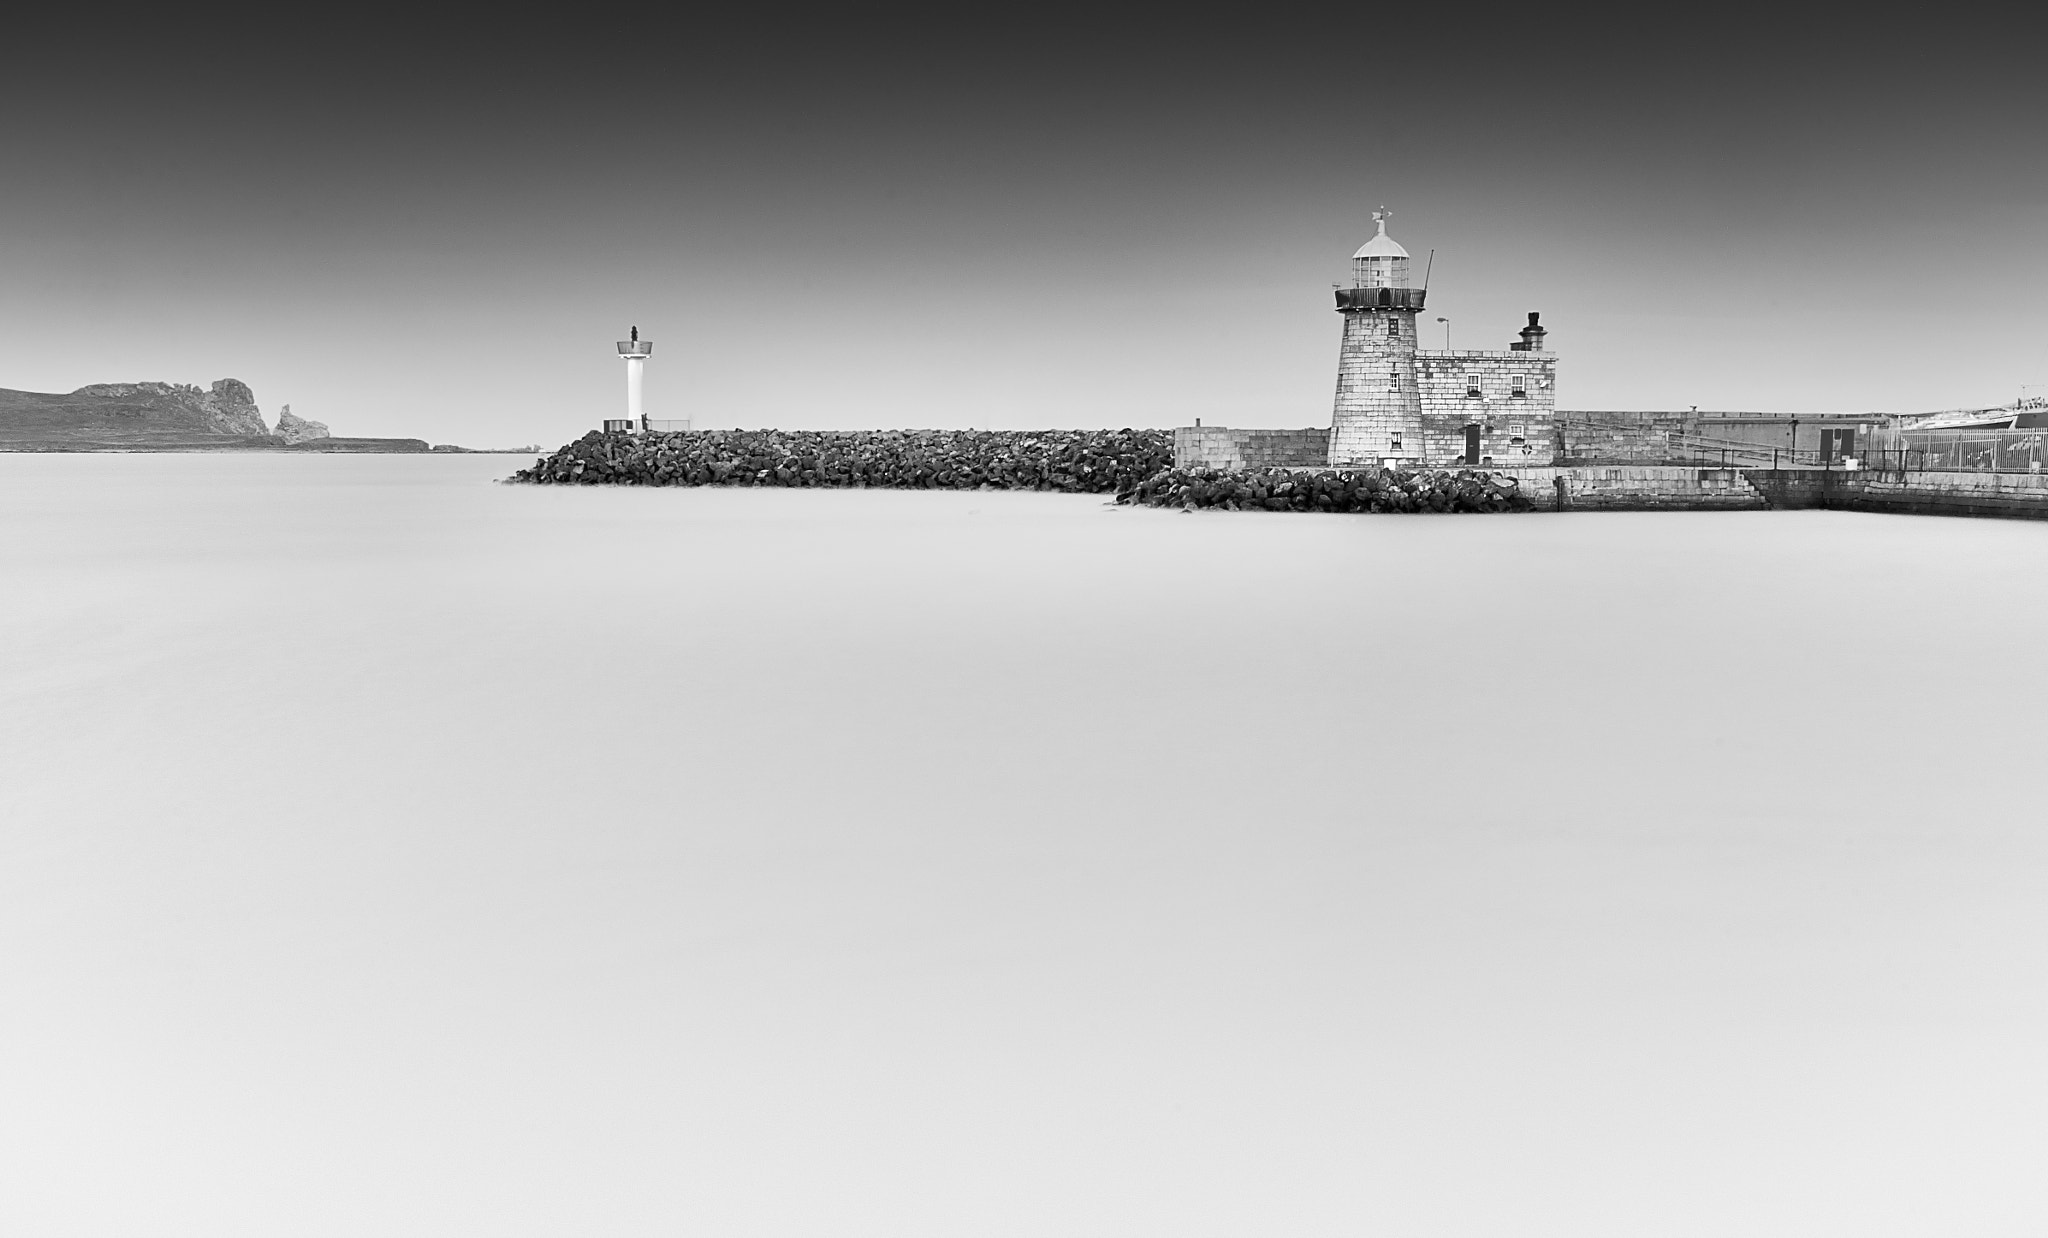 Photograph Howth Lighthouse in Ireland by Paul Harley on 500px